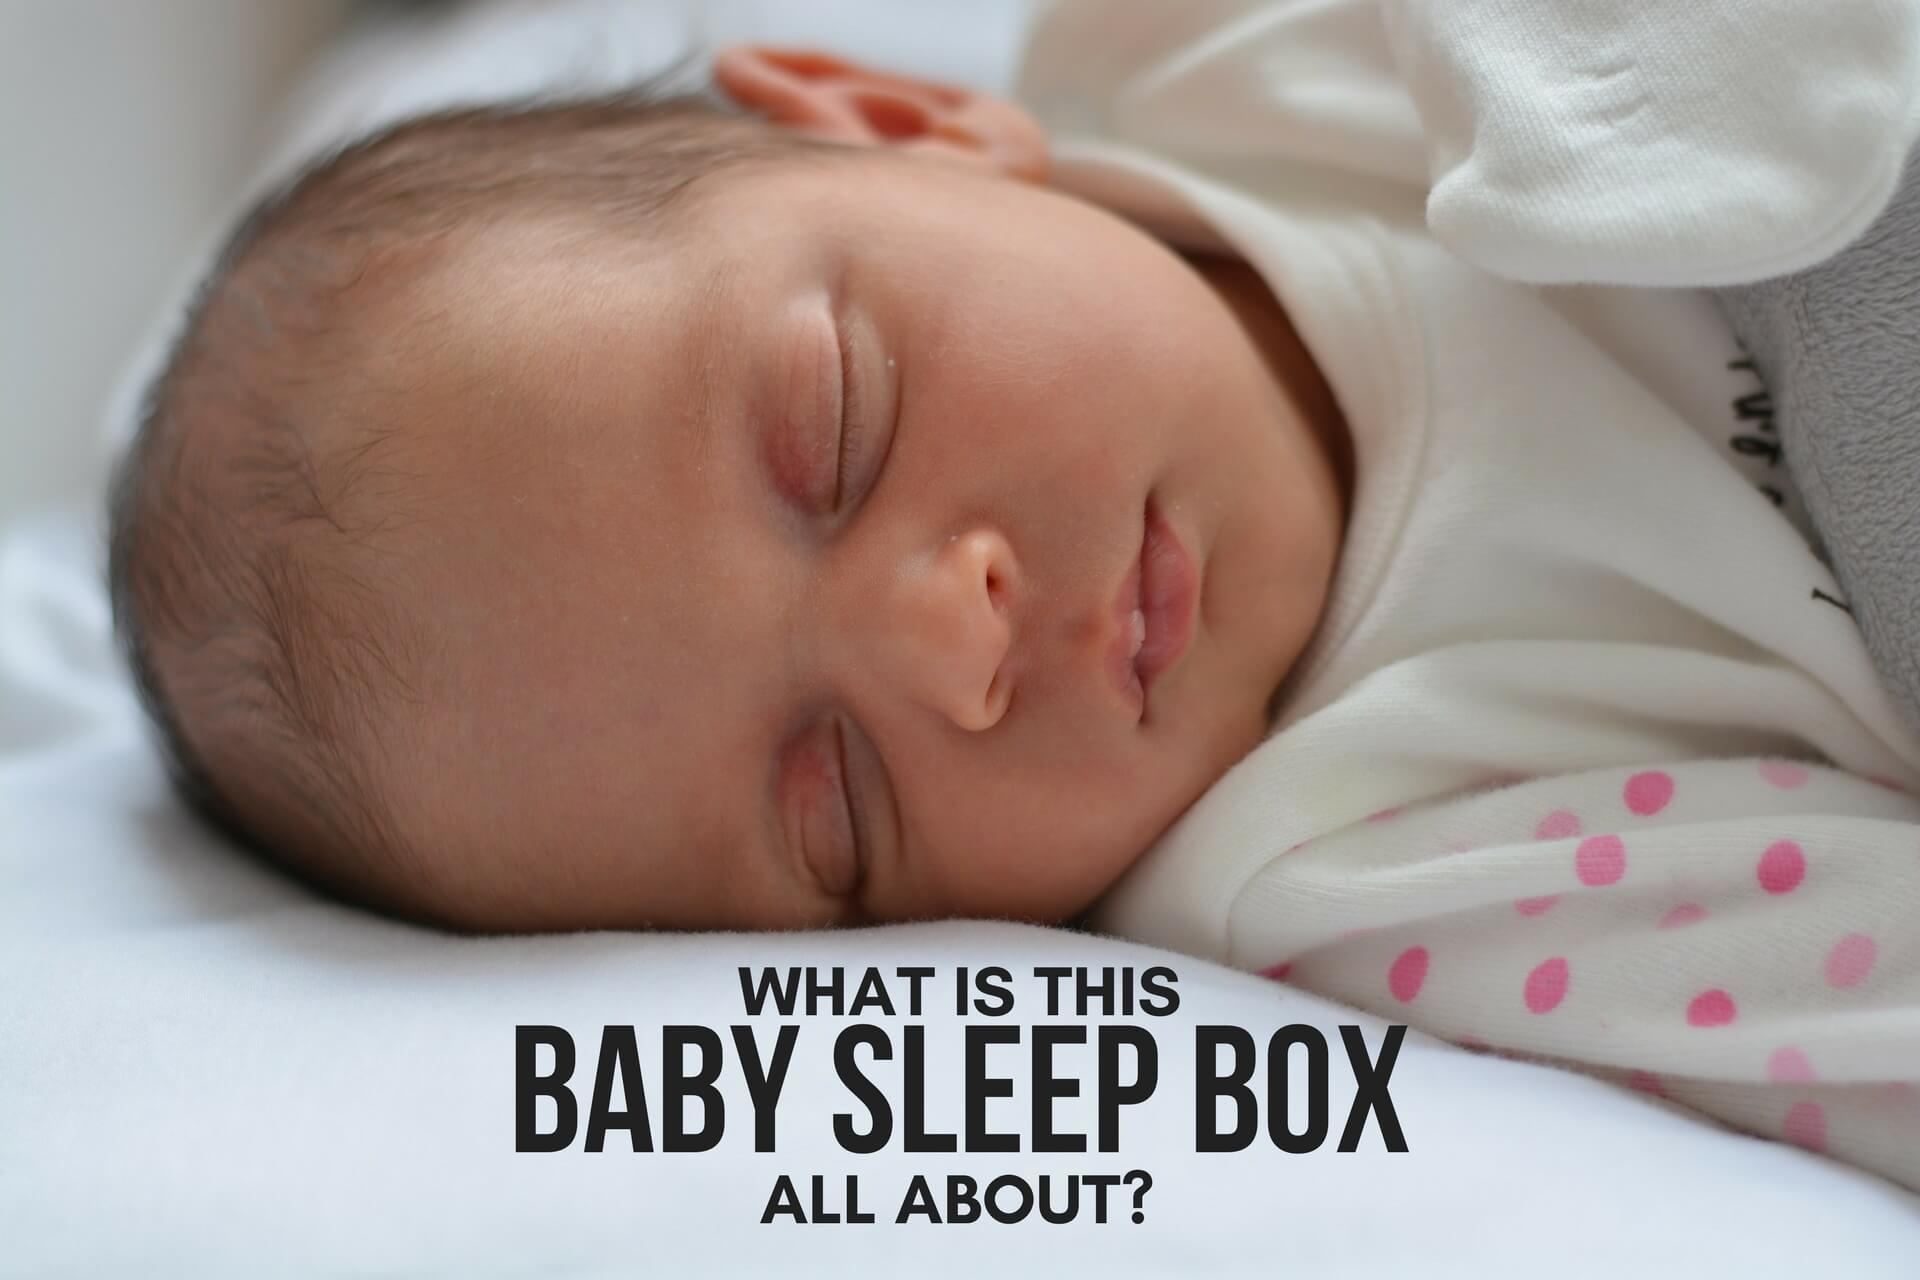 WHAT IS THIS BABY SLEEP BOX ALL ABOUT?